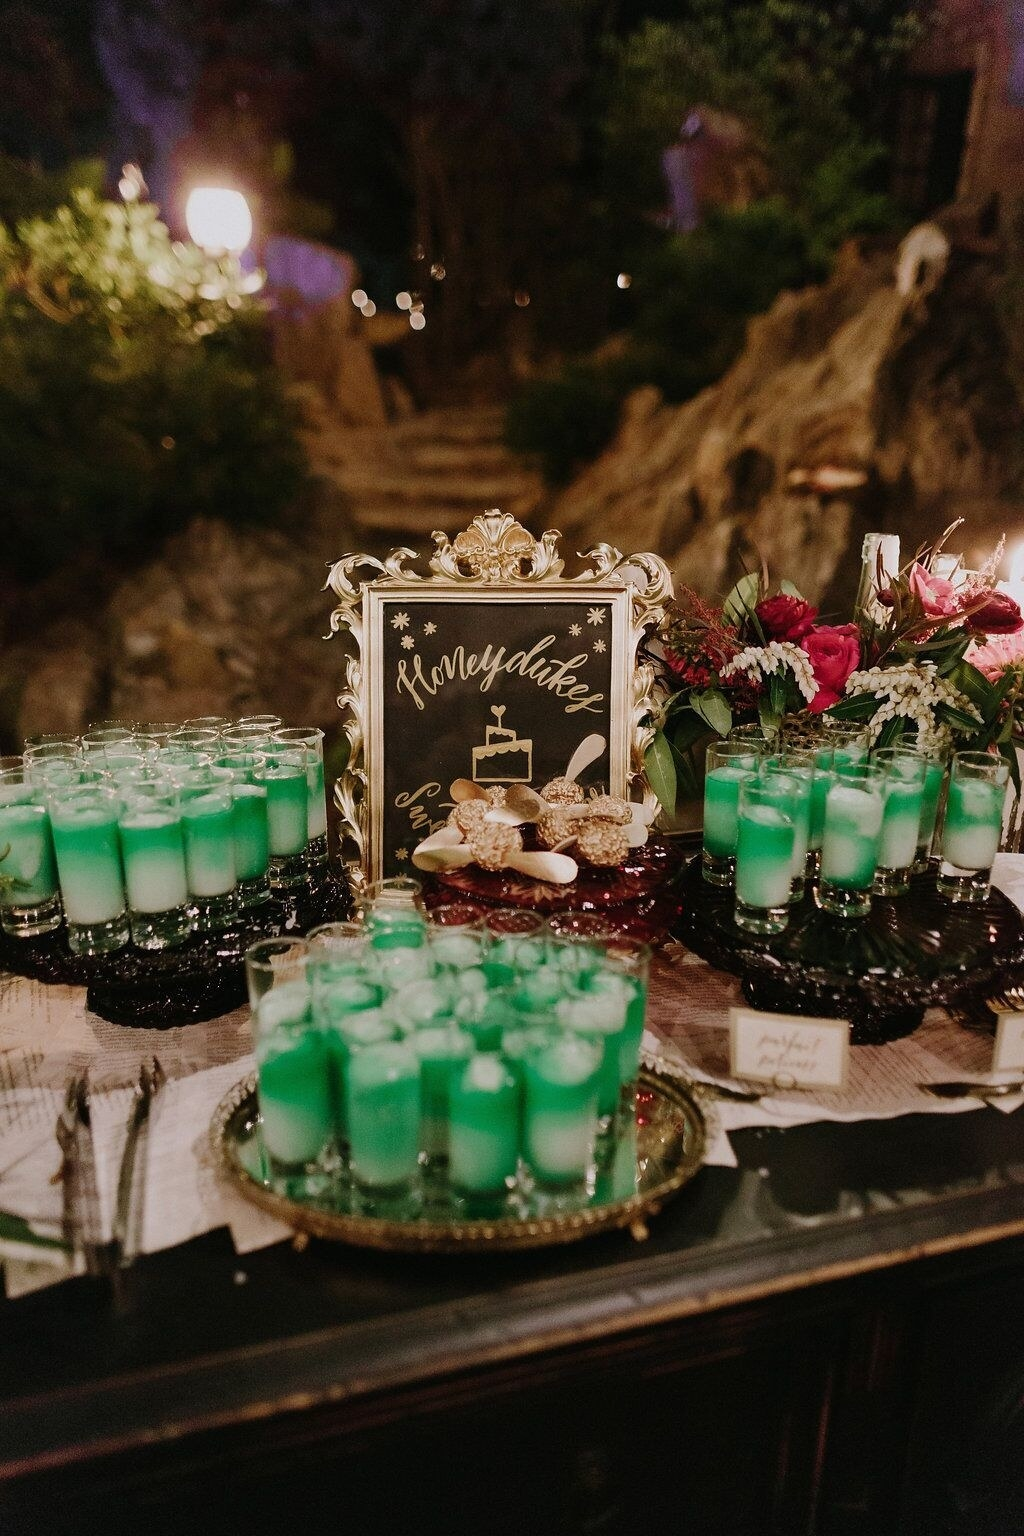 Location Décoration Harry Potter This Might Be The Prettiest Harry Potter Themed Wedding You